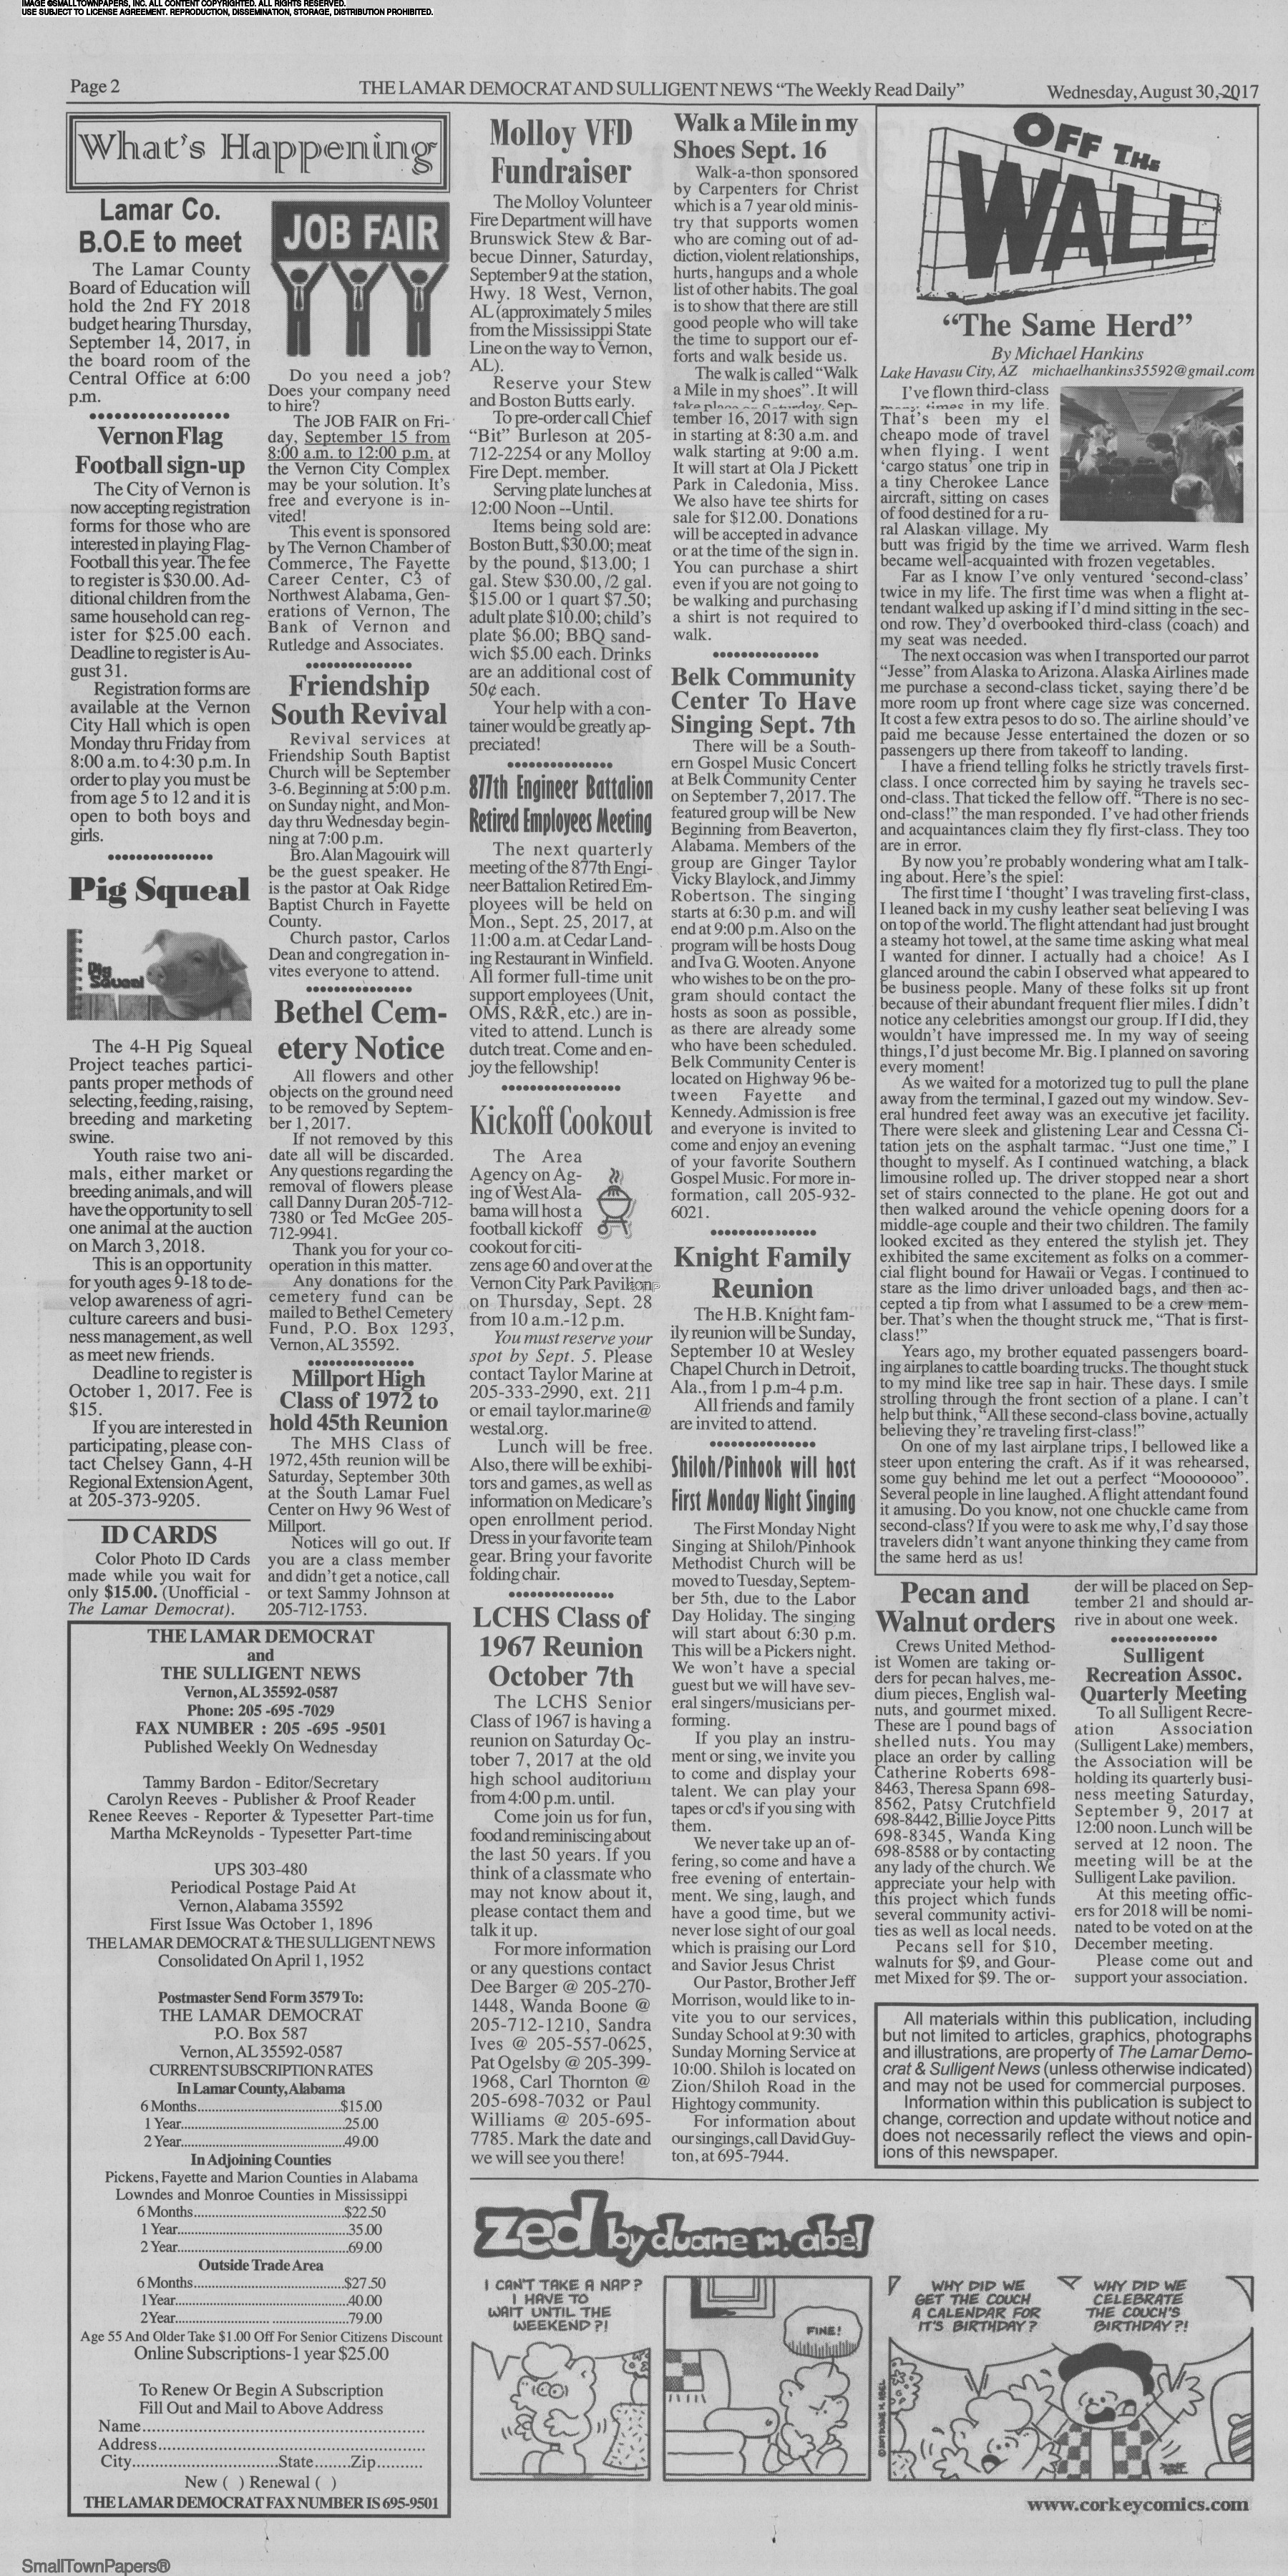 The Lamar Democrat and Sulligent News August 30, 2017: Page 2